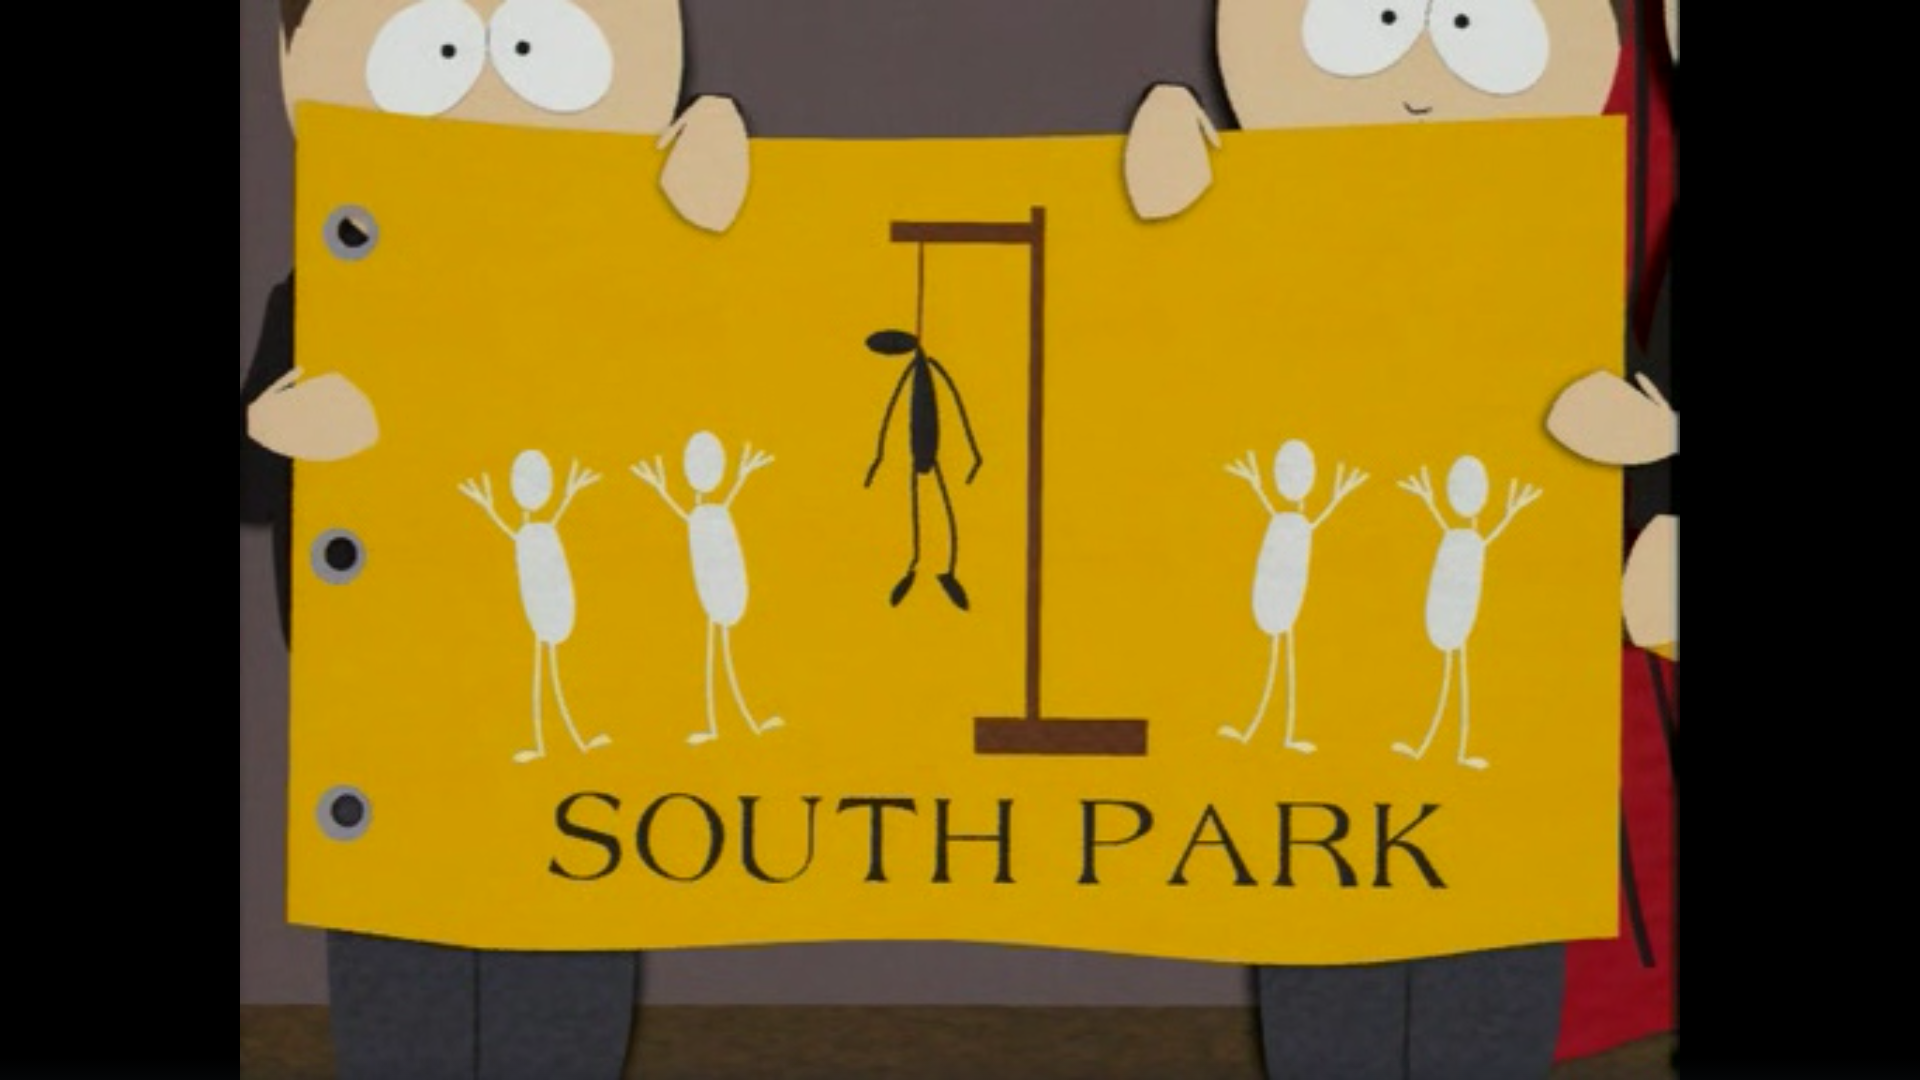 A still image of the former flag of South Park, it depicts four white stickman hanging one black stickman.